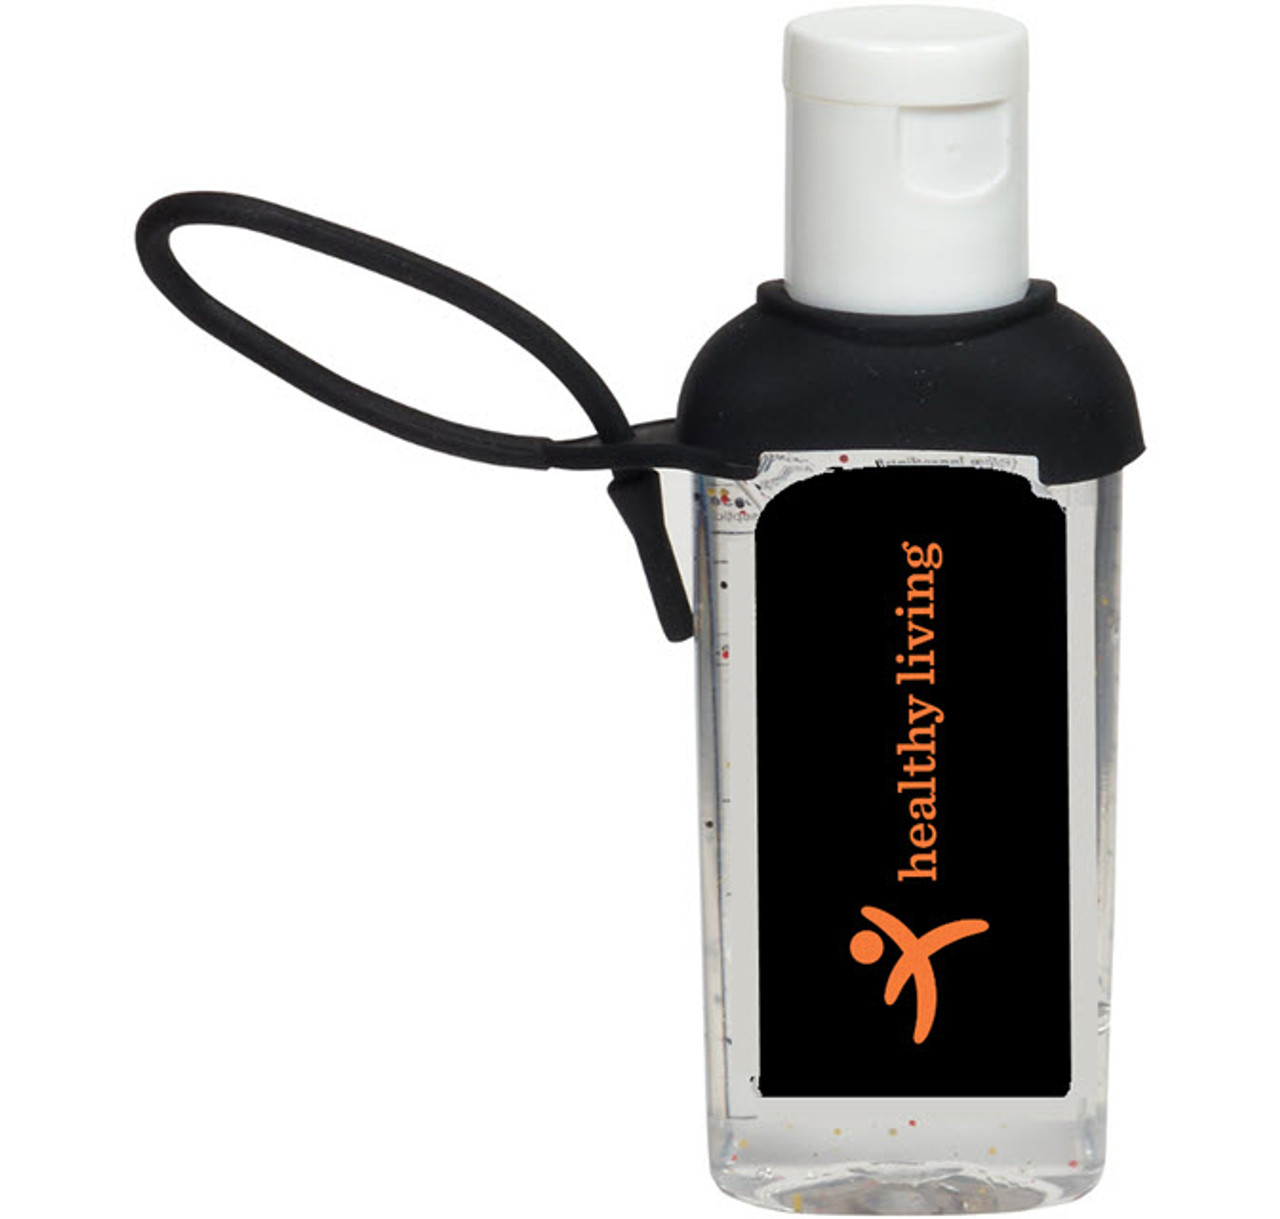 2 oz Hand Sanitizer with Silicone Strap-OUT OF STOCK